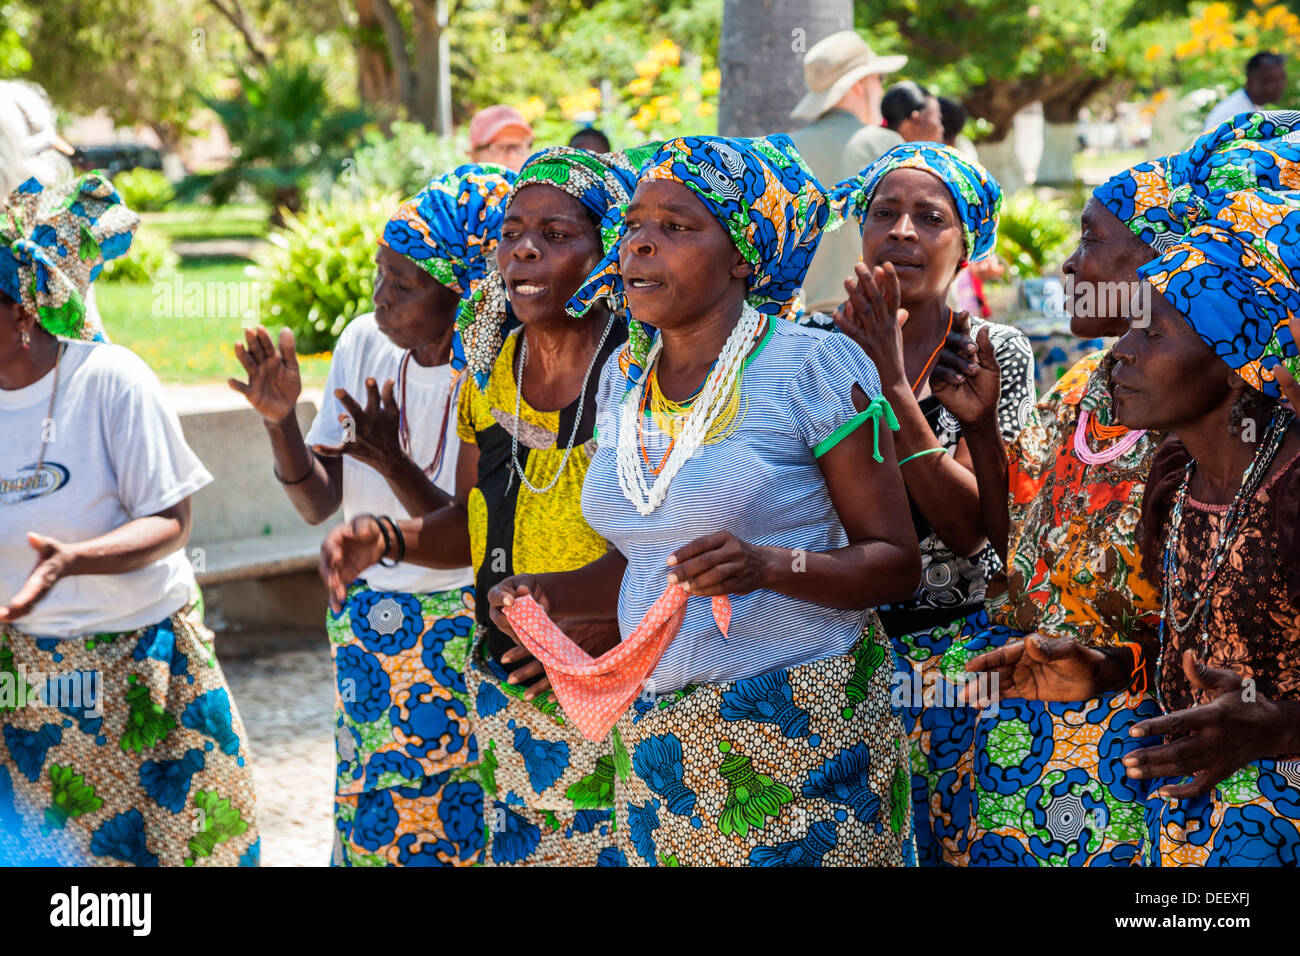 Africa, Angola, Benguela. Woman dancing in town square. Stock Photo